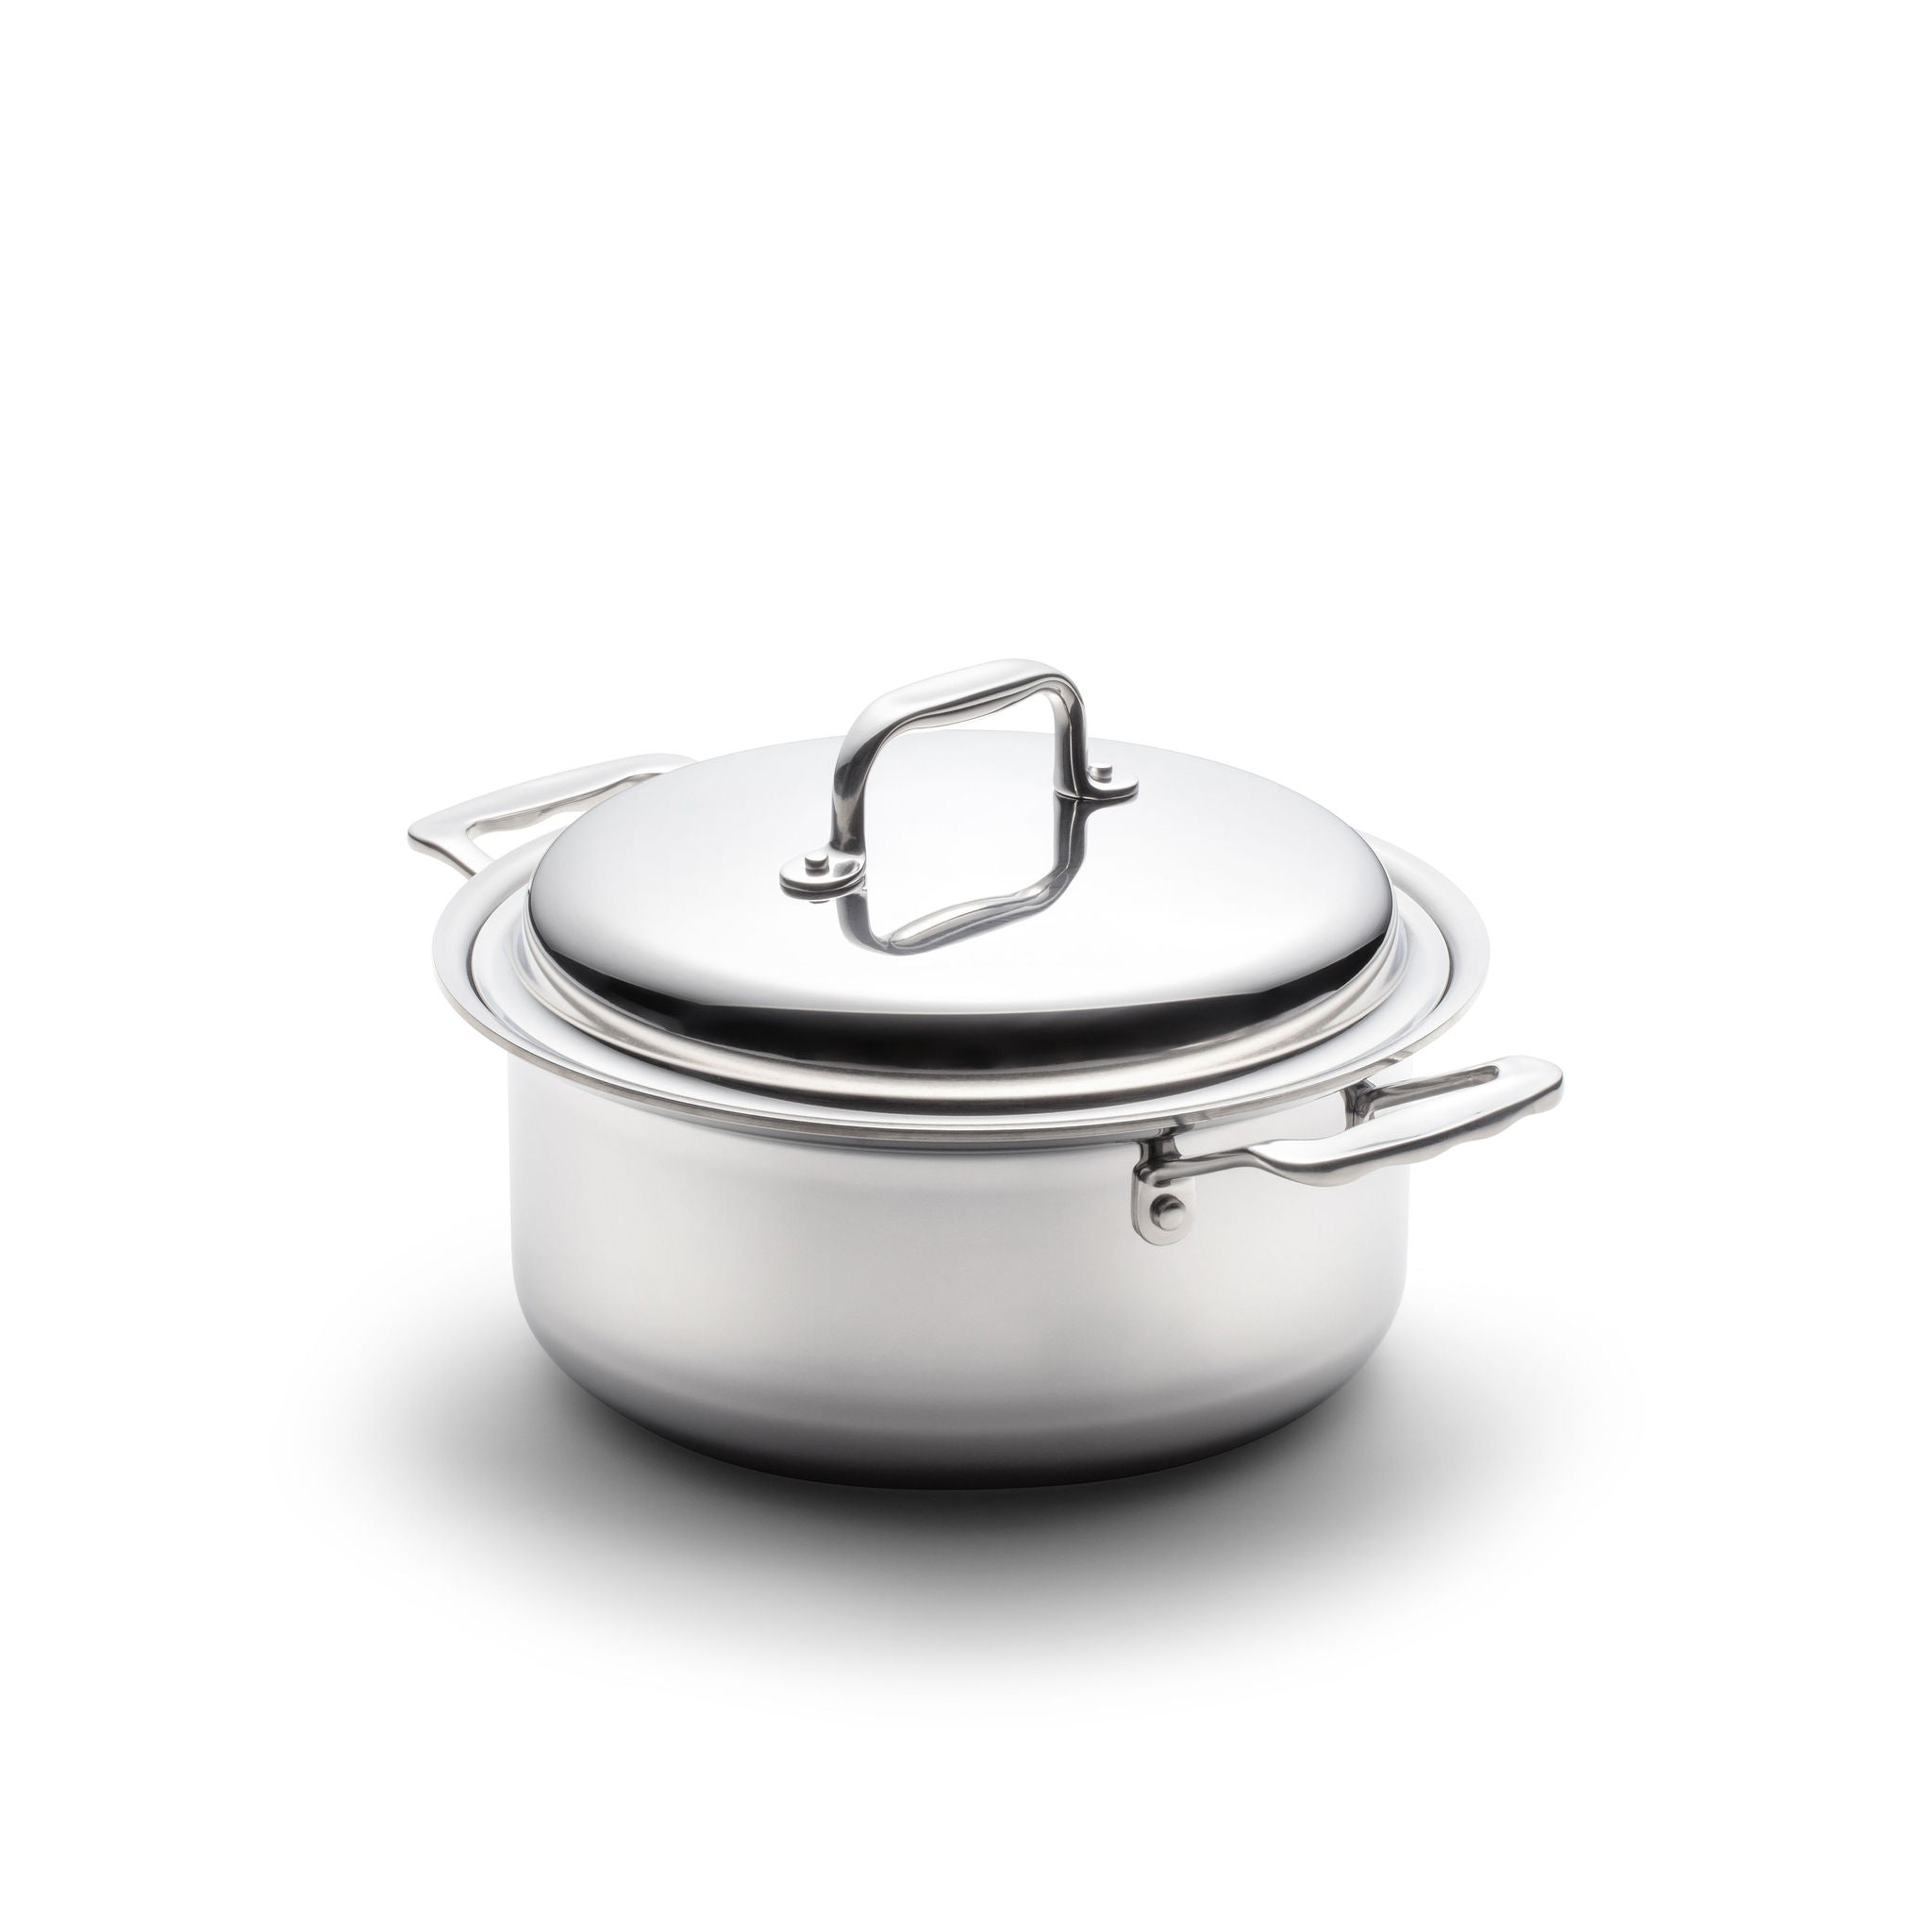 4 Quart Stockpot with Cover